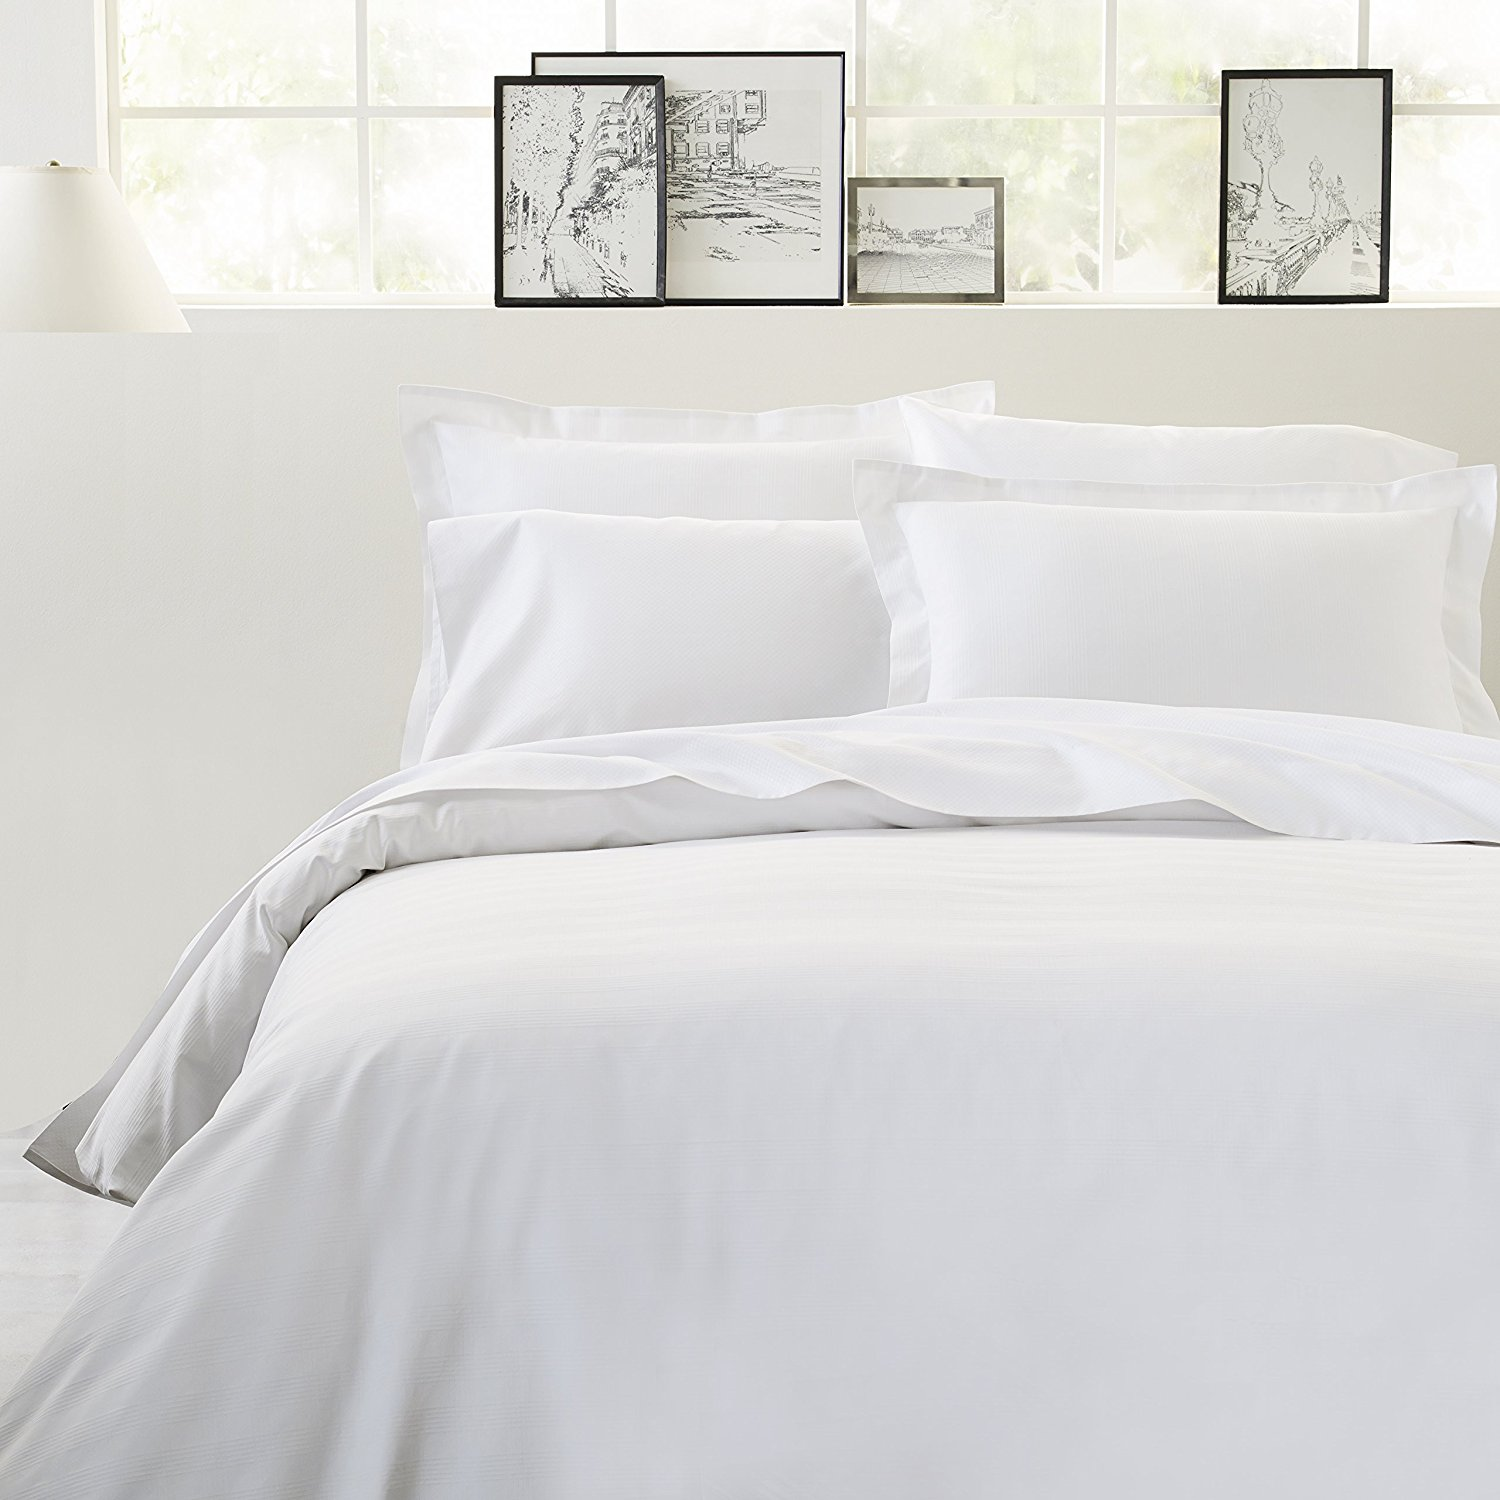 Image of California Design Den Cotton Sheets - Best Sheets for Sweaty Sleepers